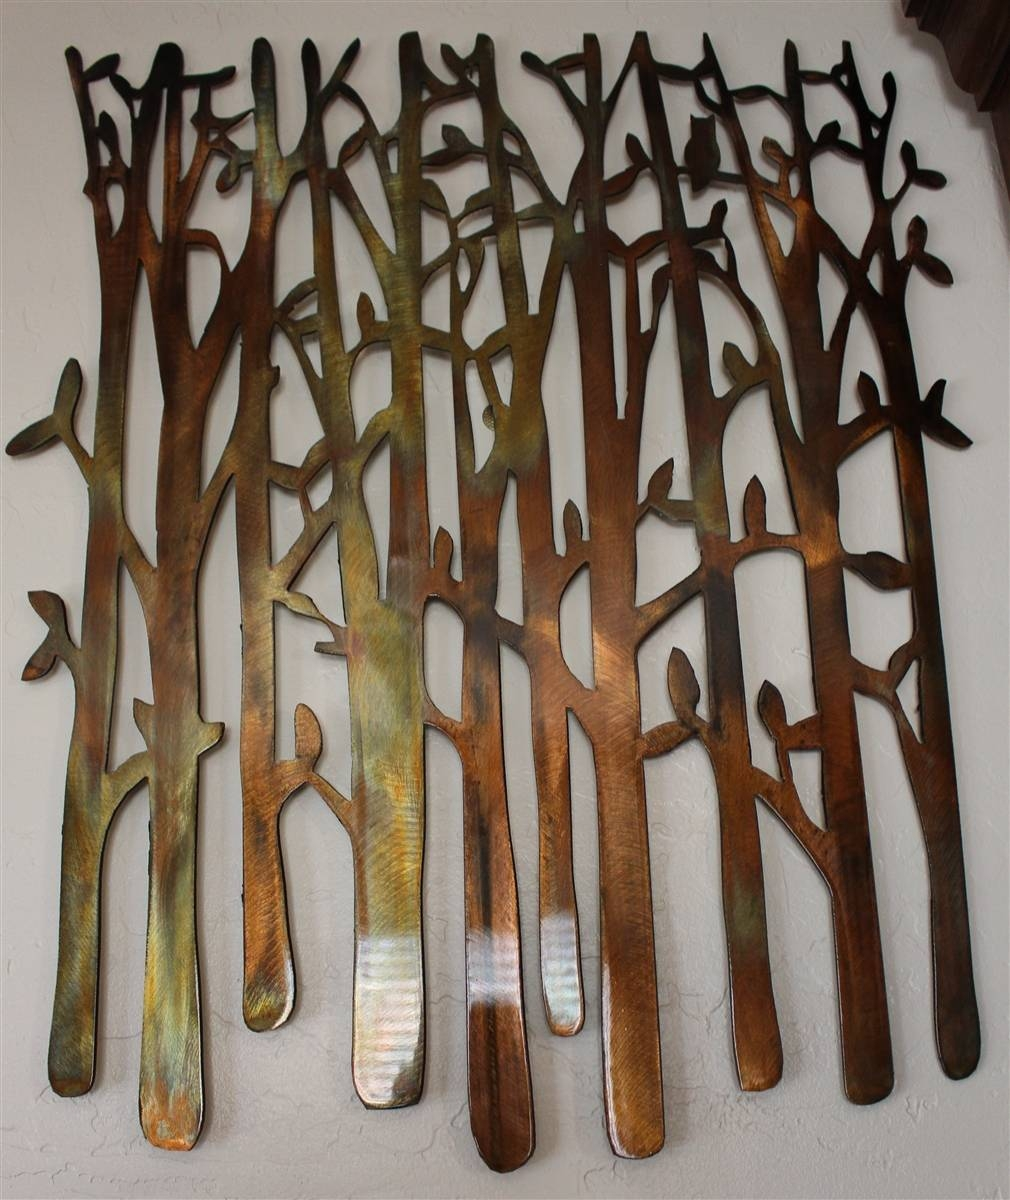 Birch Tree, Birch Tree Metal Art, Bamboo, Bird In The Trees, Bird Throughout Most Recent Trees Metal Wall Art (View 2 of 20)